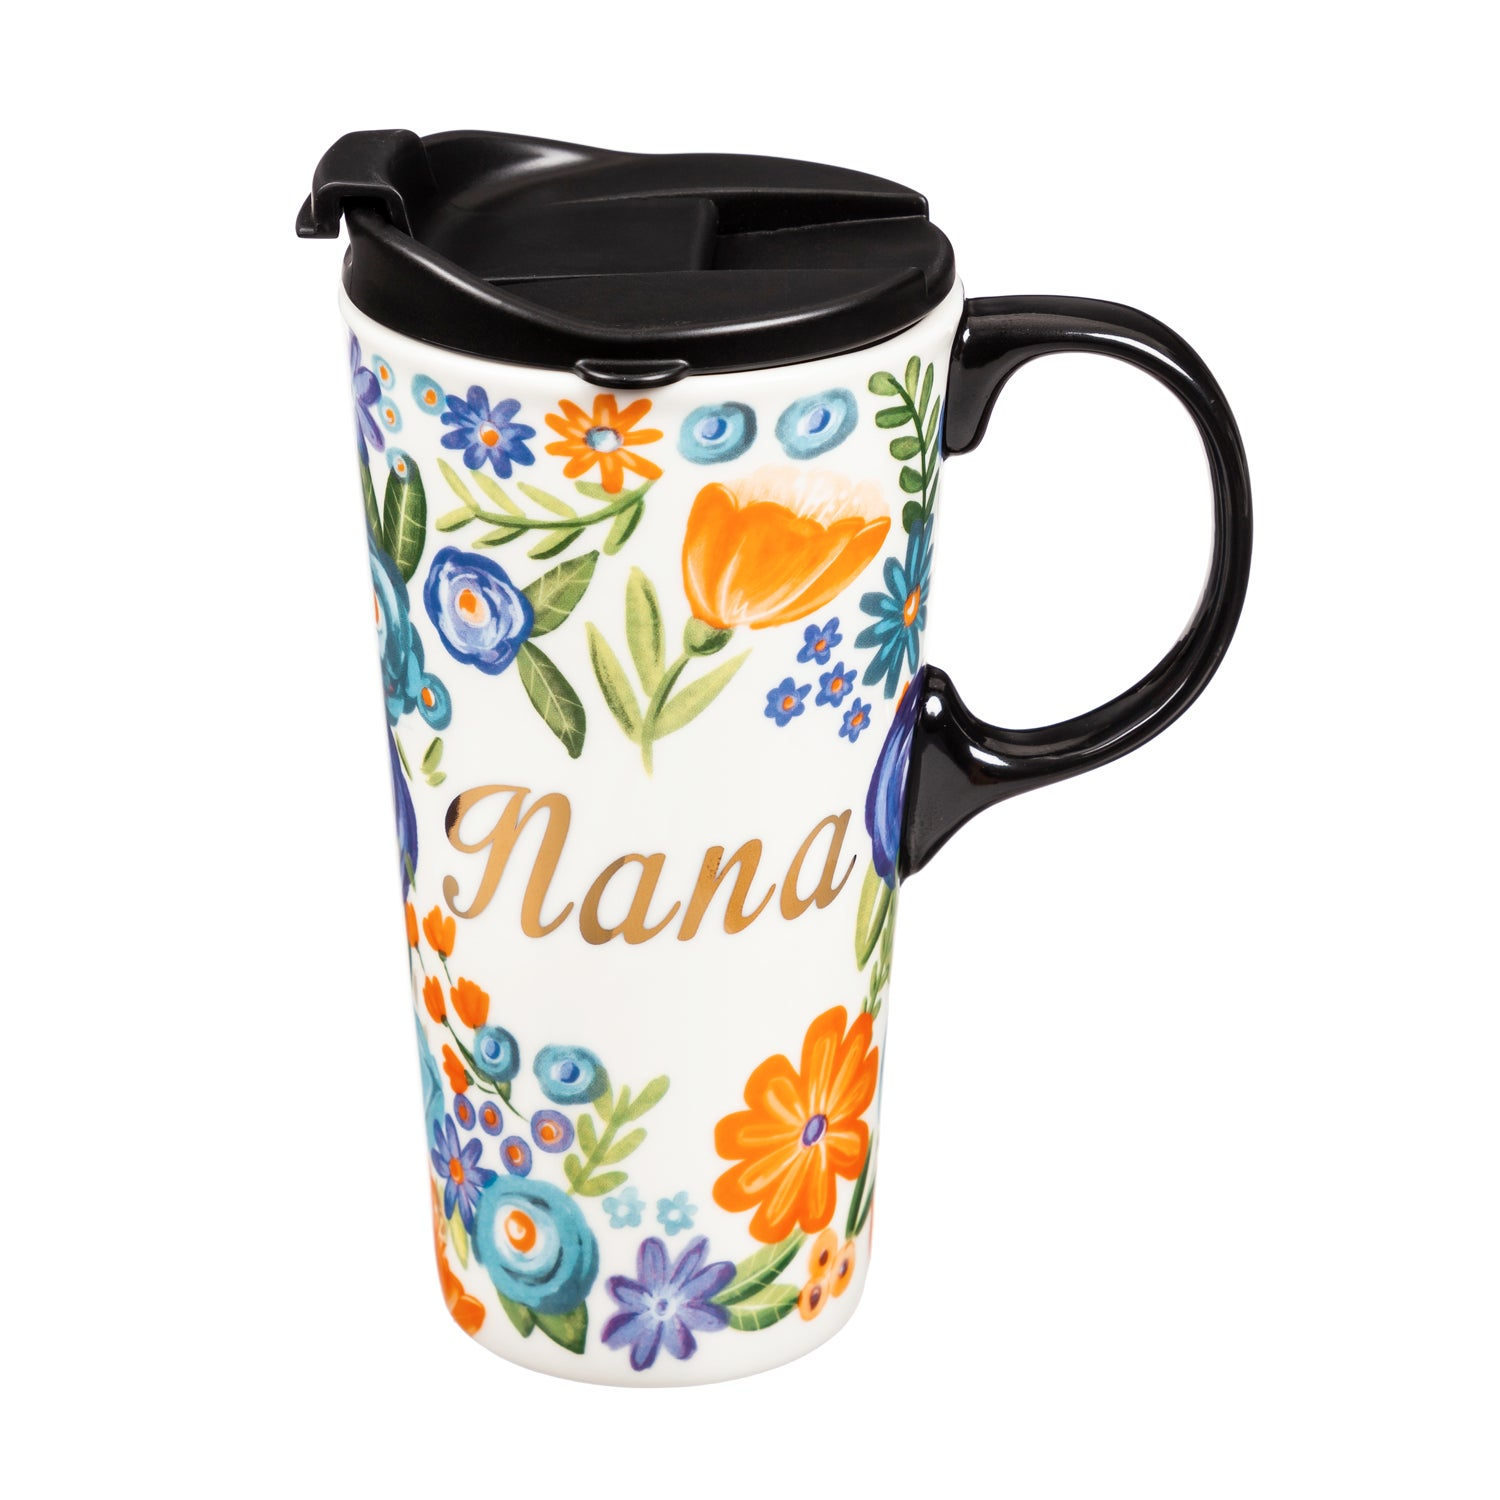 Nana Ceramic Travel Coffee Mug